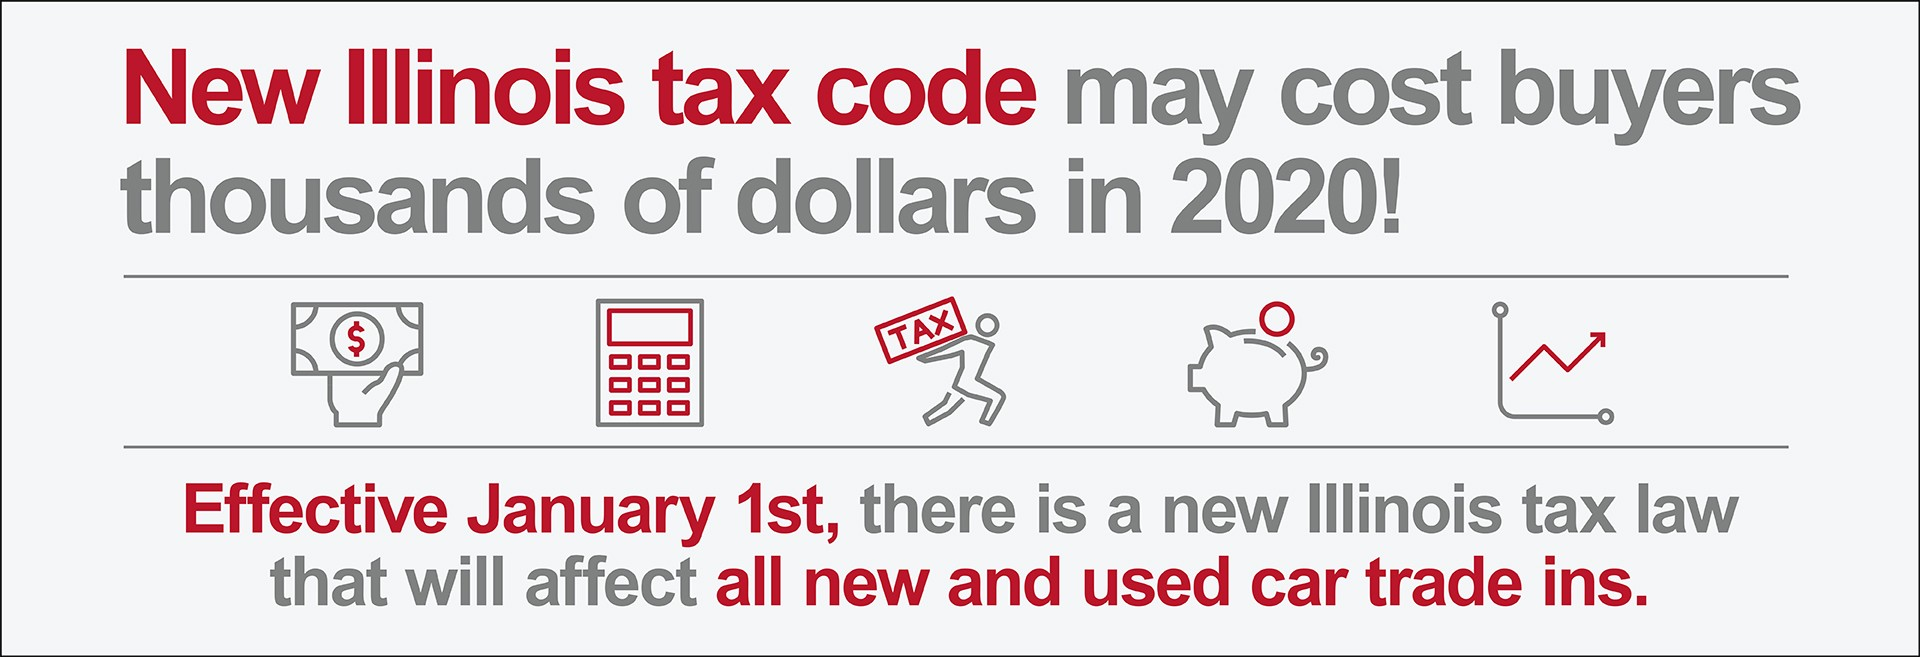 New Illinois tax code may cost buyers thousands of dollars in 2020